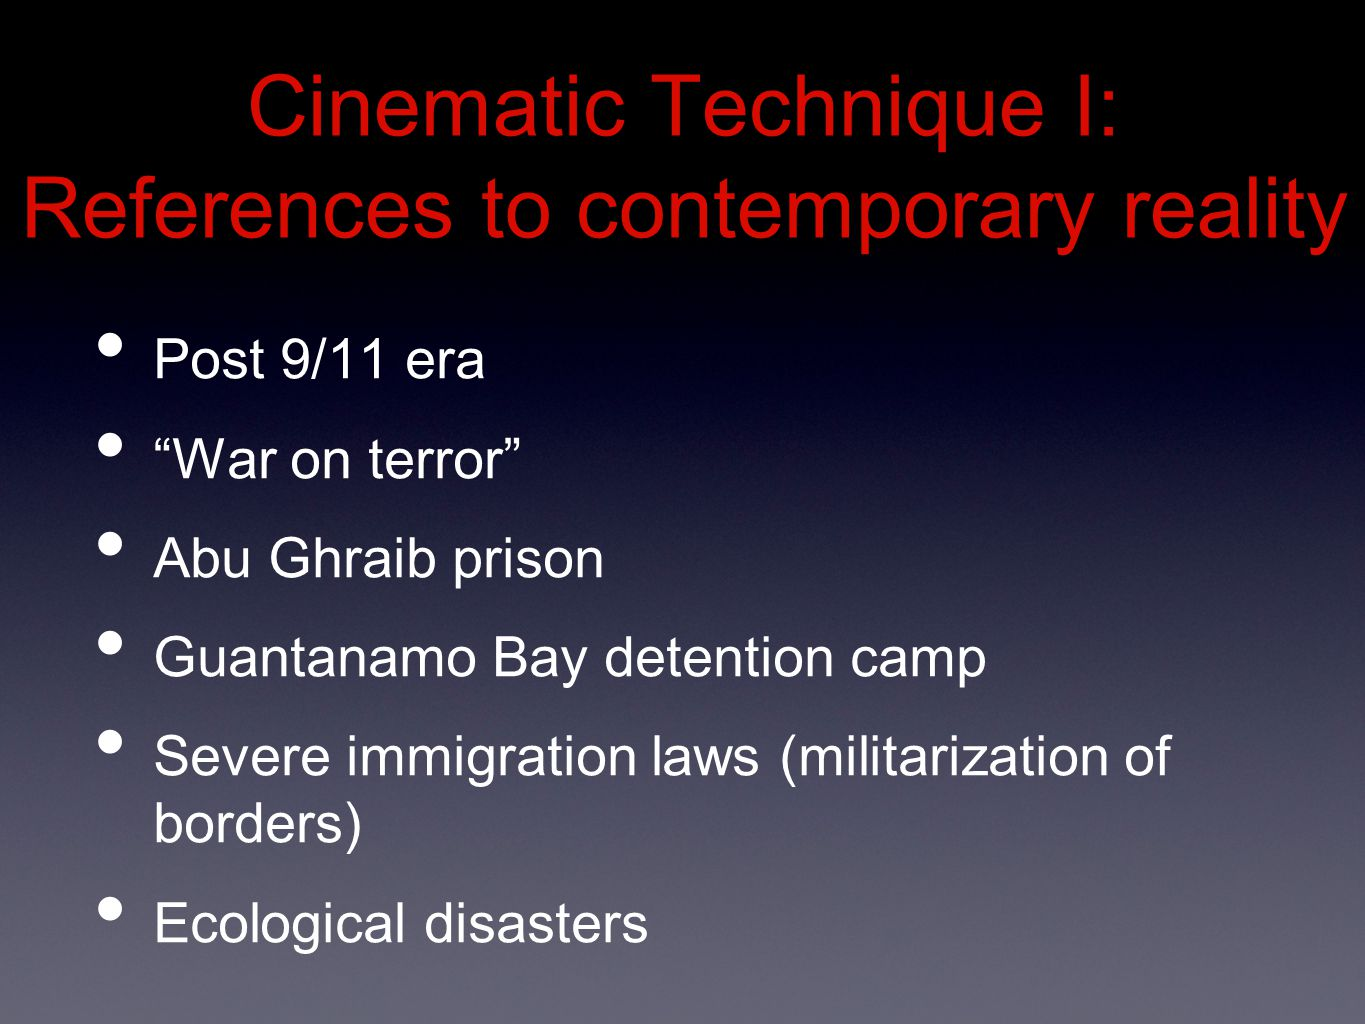 Cinematic Technique I: References to contemporary reality Post 9/11 era War on terror Abu Ghraib prison Guantanamo Bay detention camp Severe immigration laws (militarization of borders) Ecological disasters